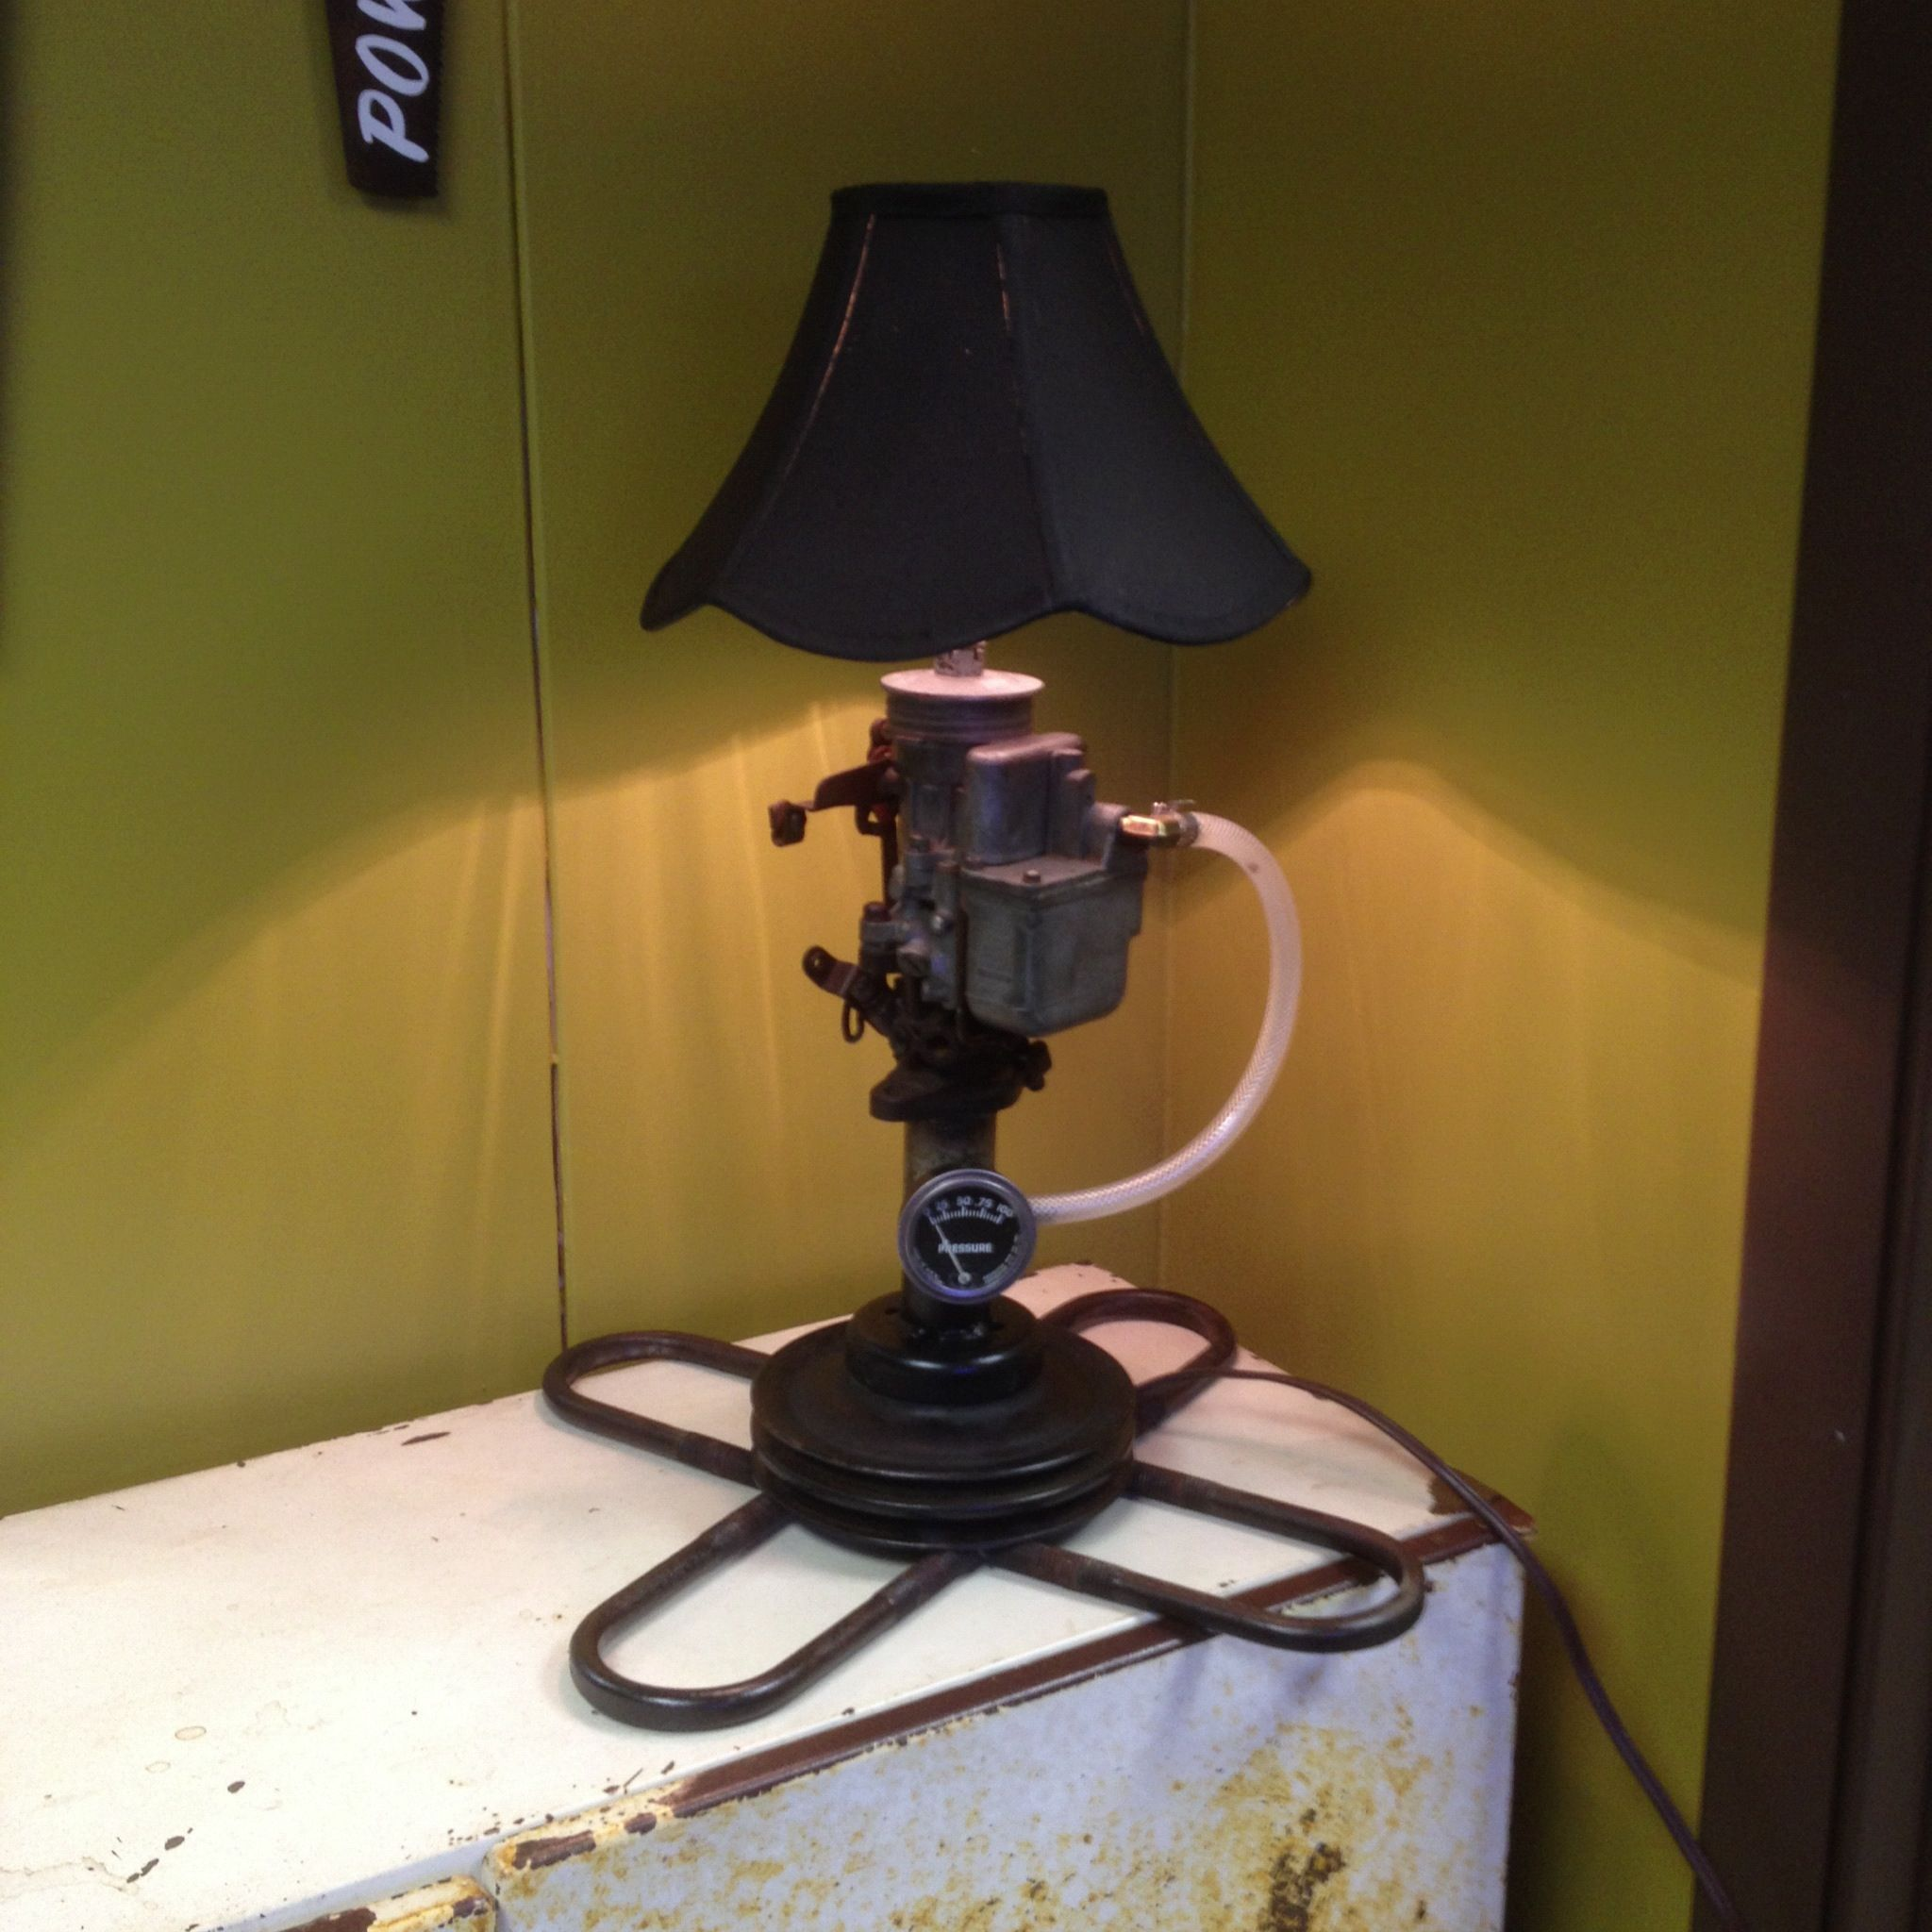 Lamp made of old car parts | Kevin Corder. Art work | Pinterest ...